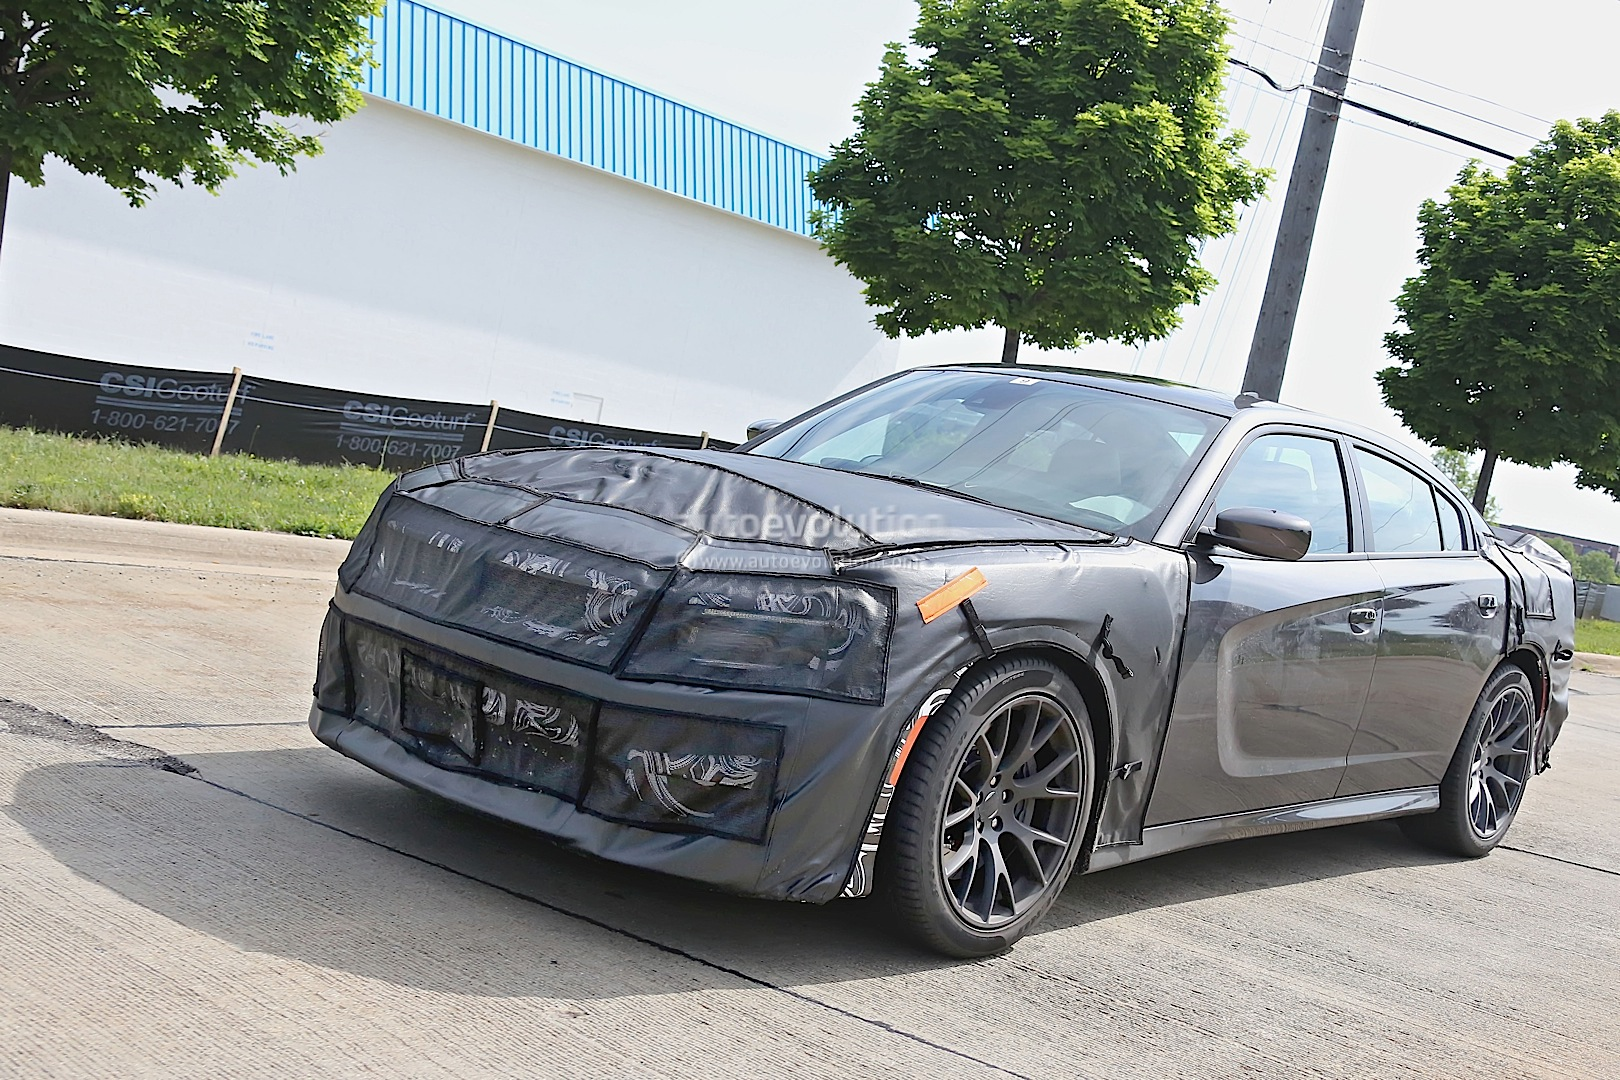 2015 Dodge Charger SRT Hellcat Spied Testing [Photo Gallery] - photo